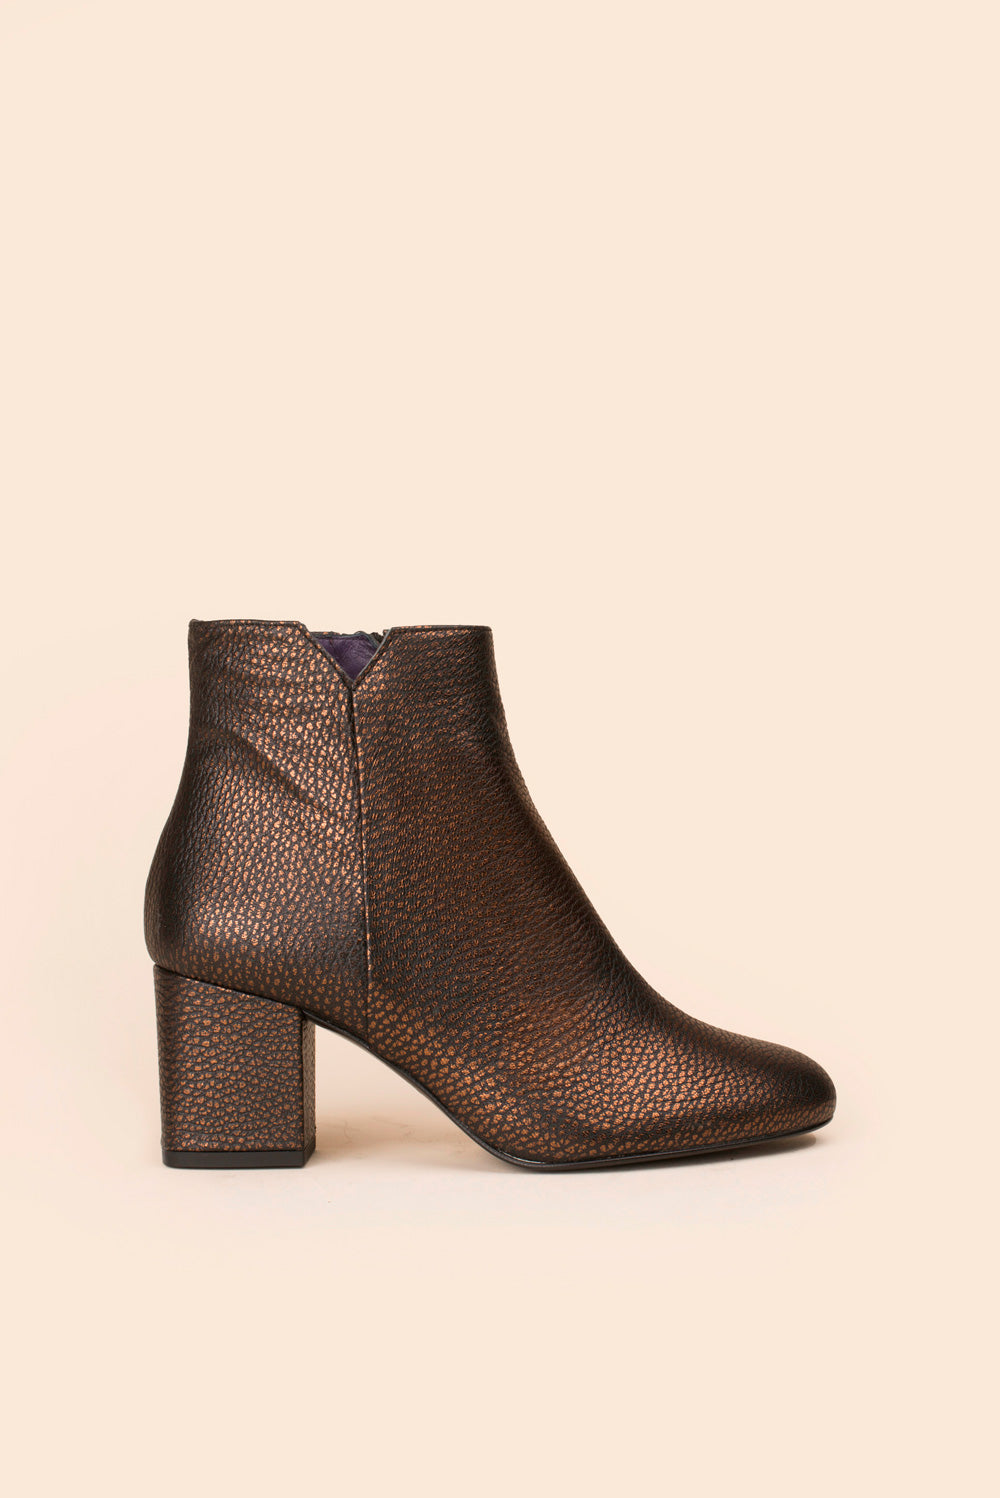 Bottines Virgin cuir texturé bronze Anaki Paris